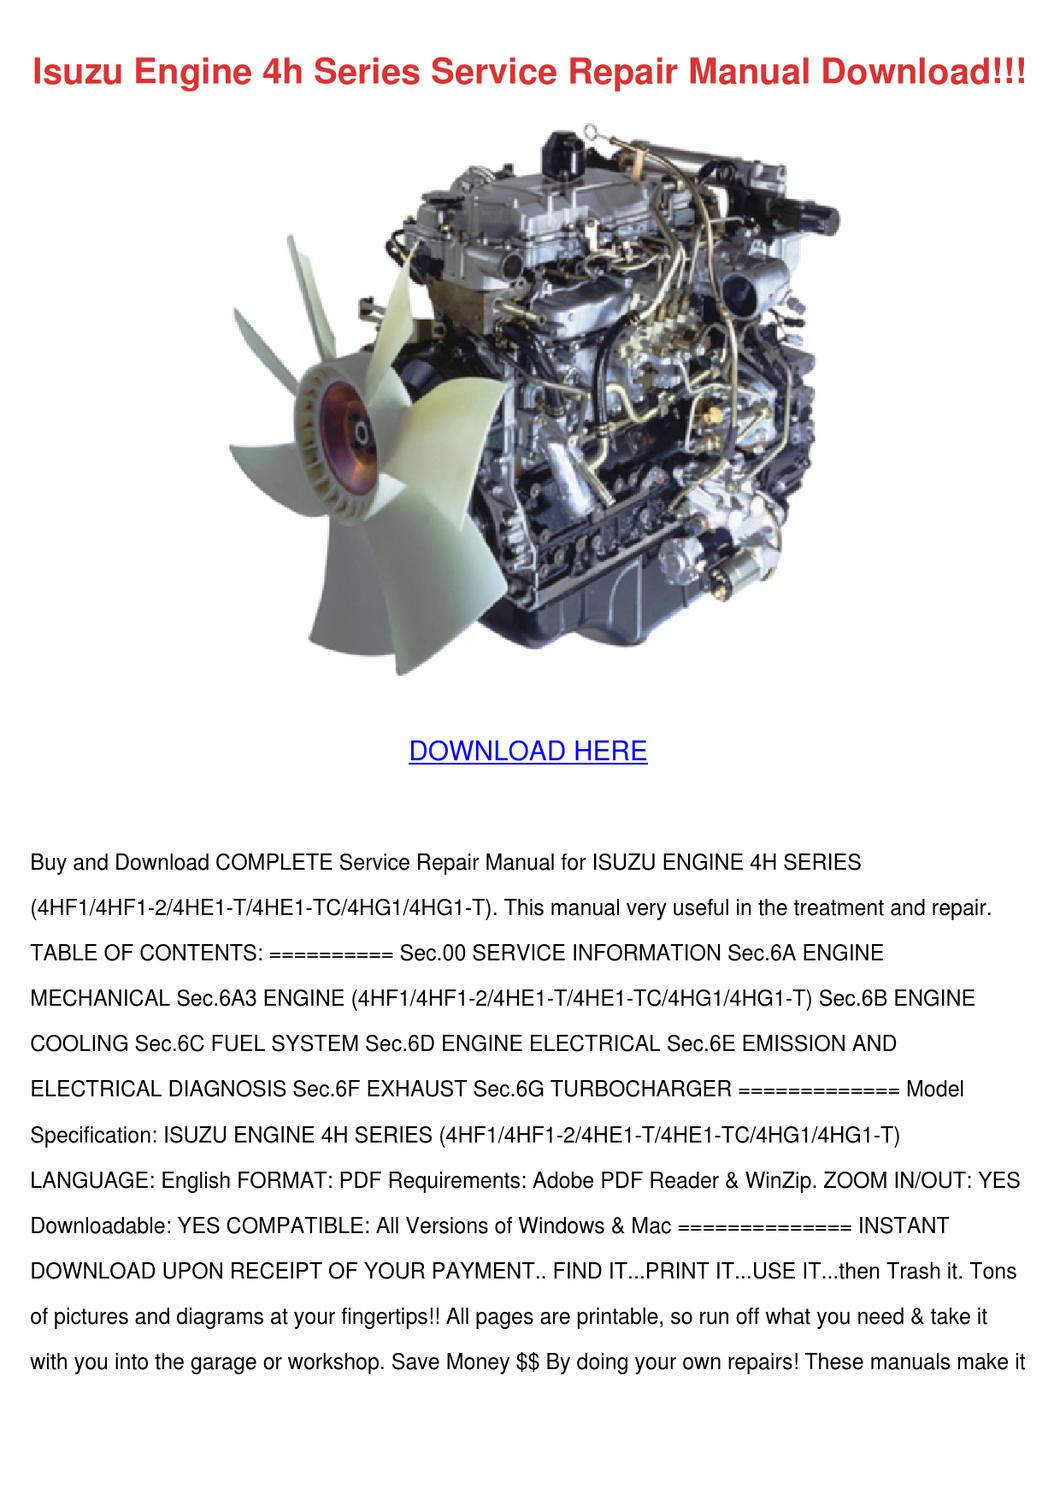 Isuzu Engine 4h Series Service Repair Manual by Shonta Wede - issuu